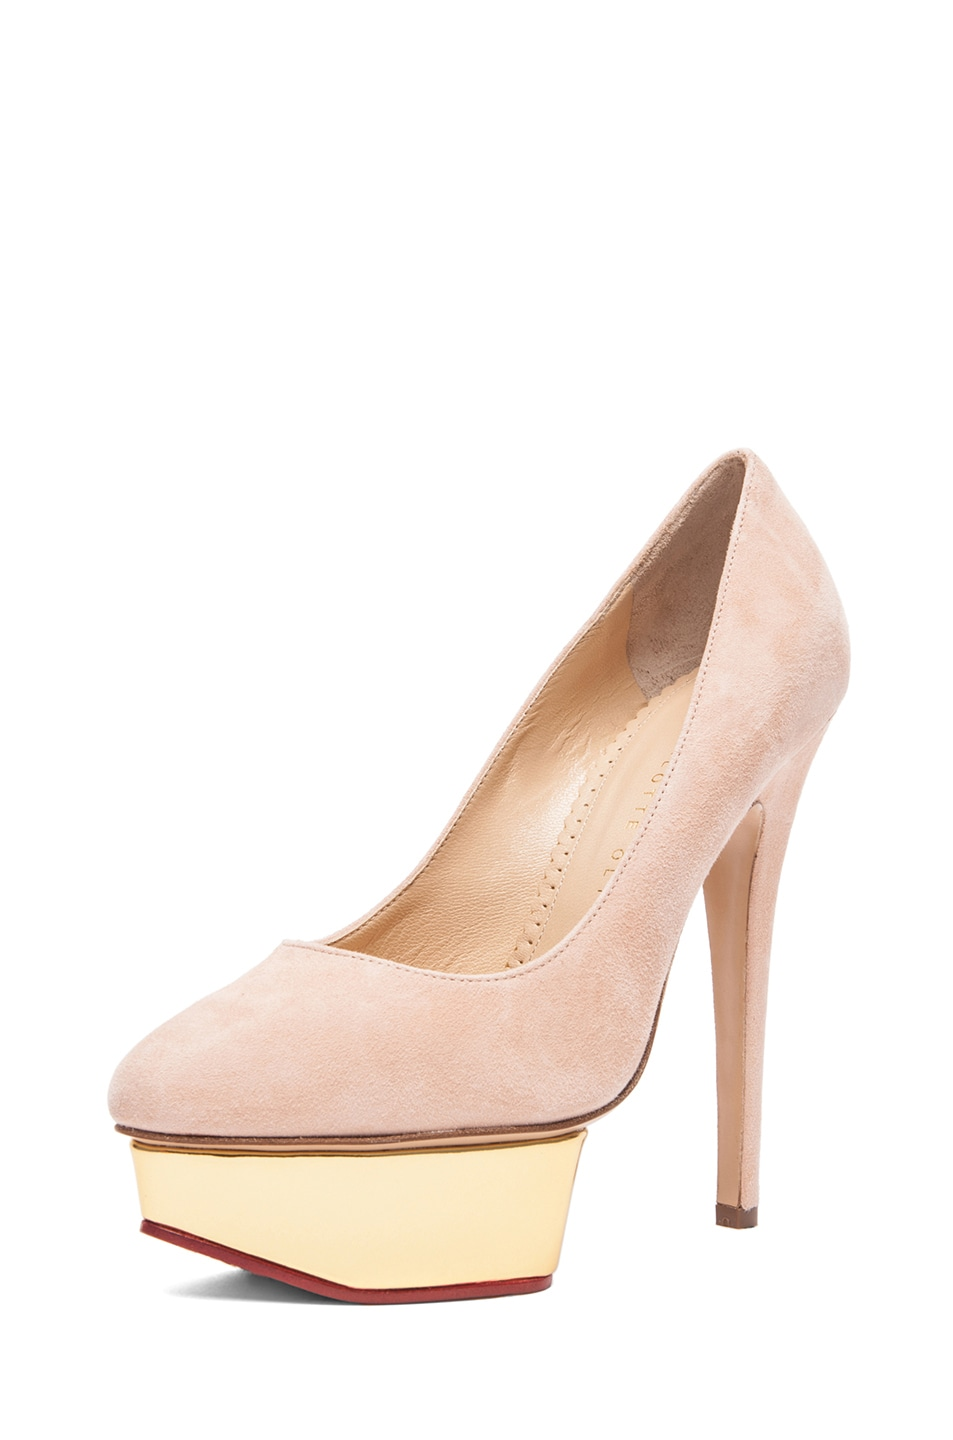 Image 2 of Charlotte Olympia Cindy Suede Pumps in Blush